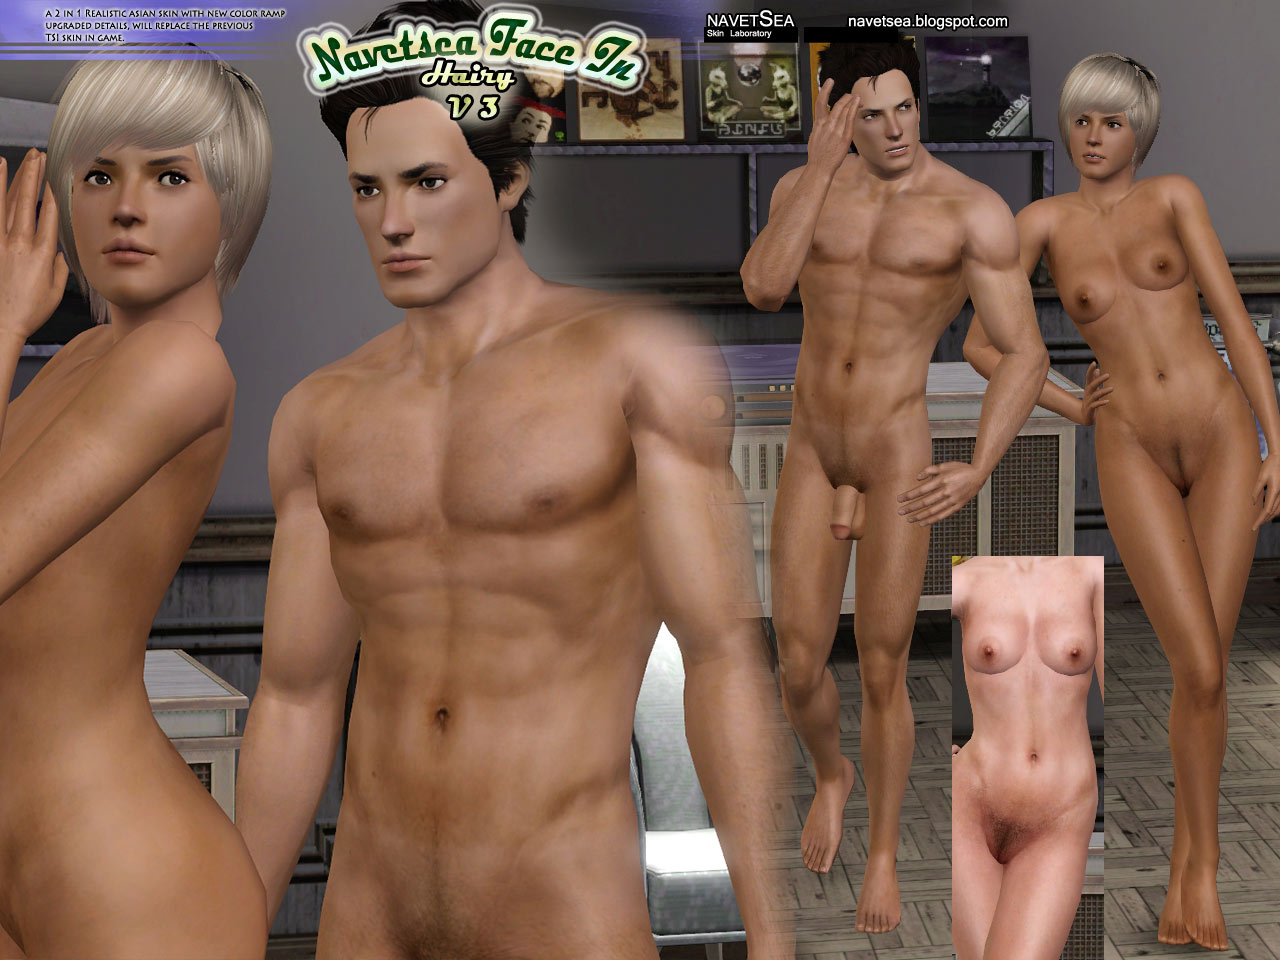 Sims 3 men naked mod nsfw galleries